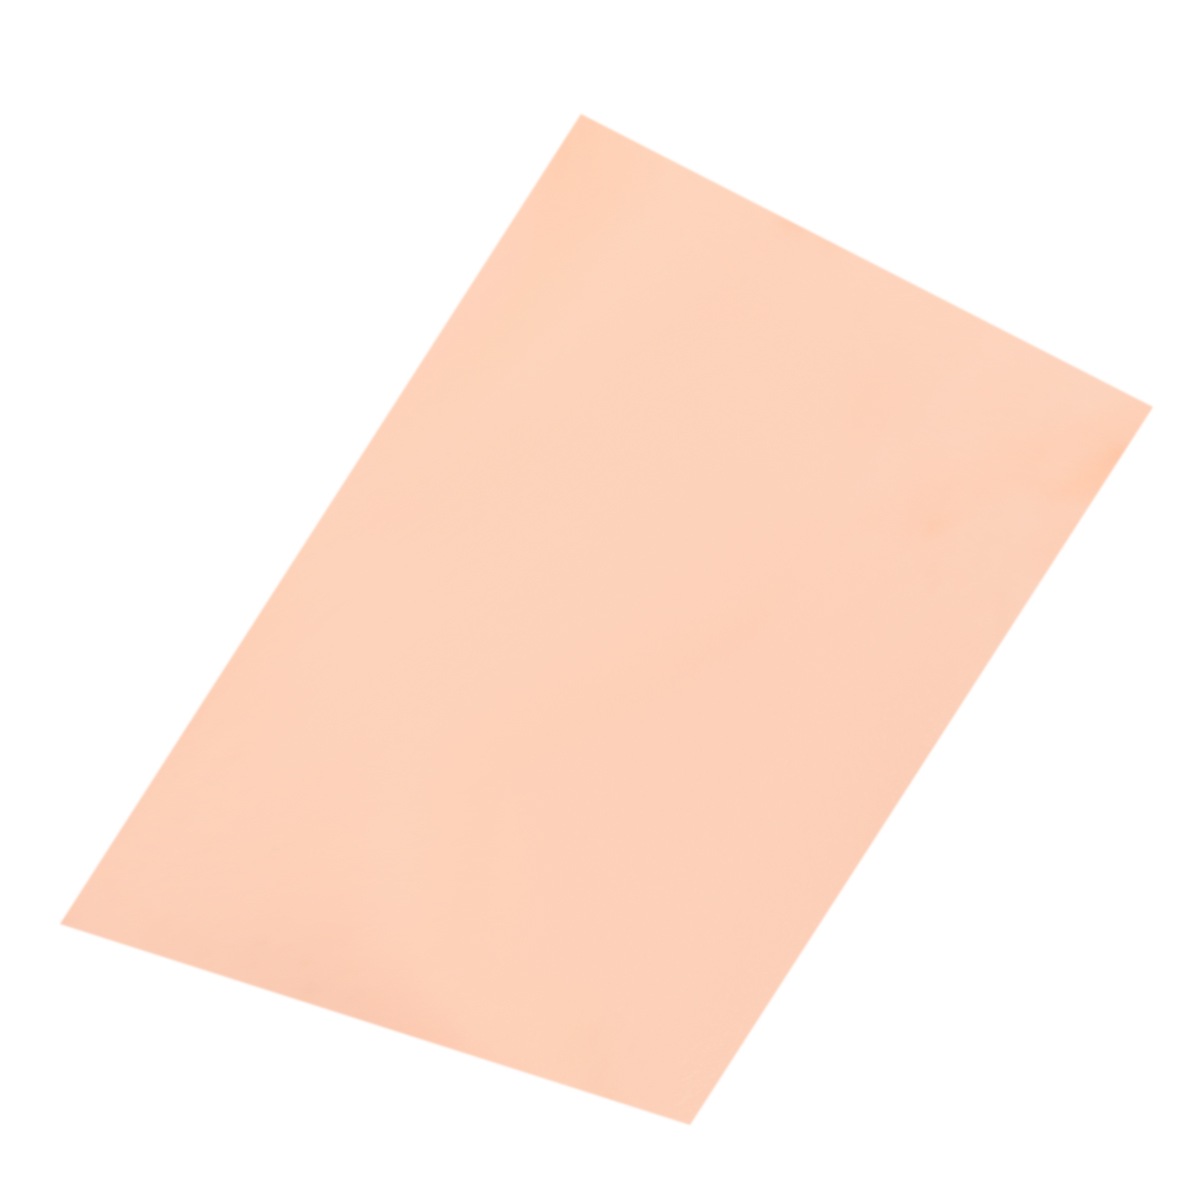 1pc 0.2mm Thickness Copper Cu Metal Sheet Foil 99.9% Pure Copper Plate 100x100mm With Good Electrical Conductivity